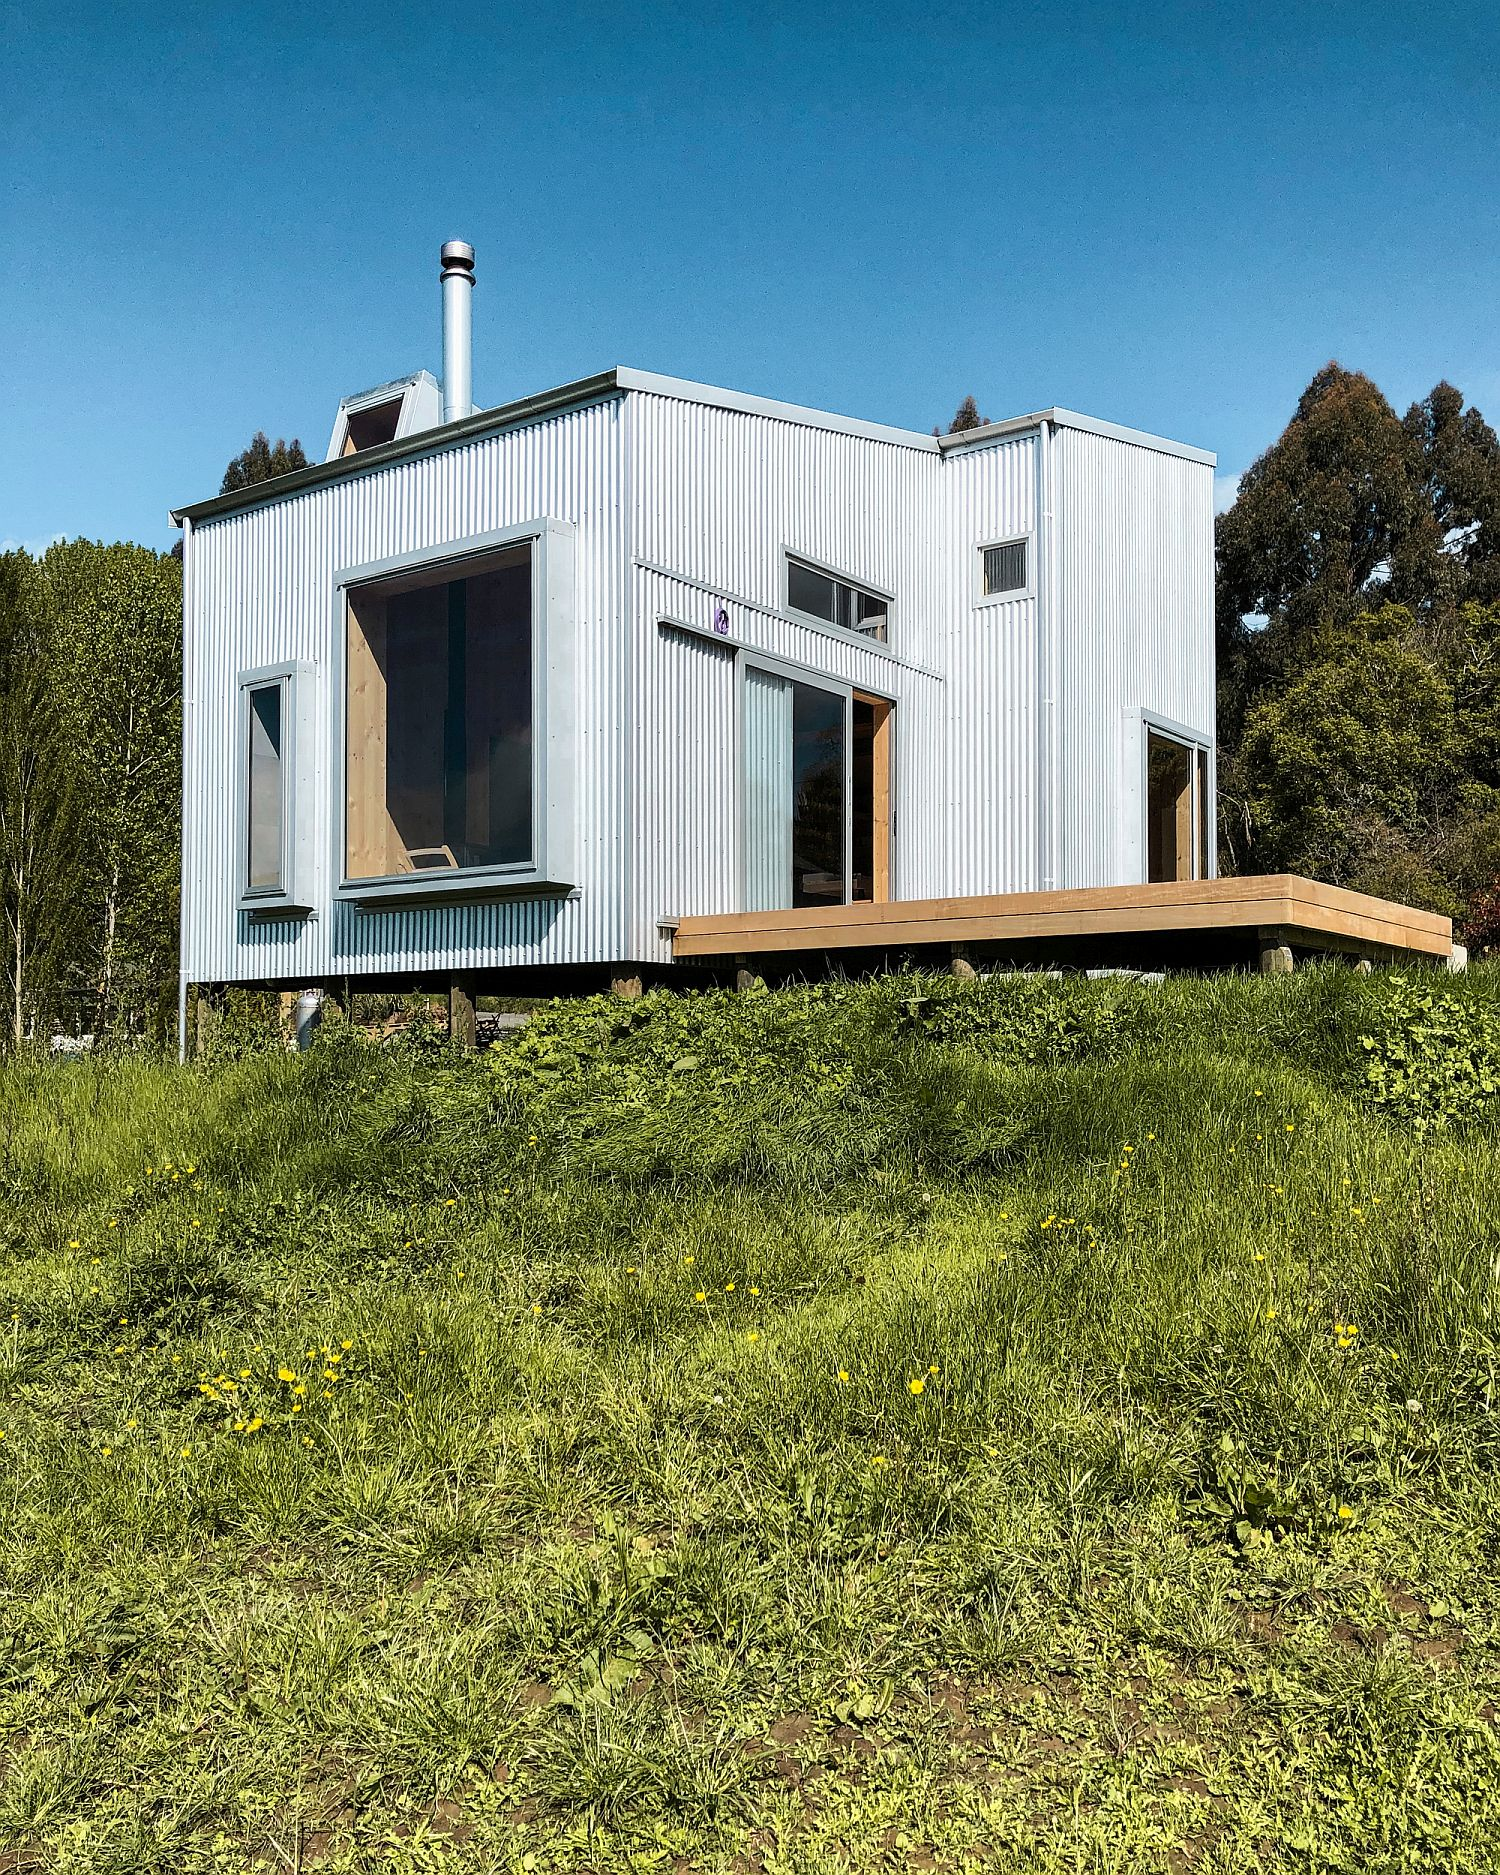 Cabin in the hills using prefab wooden panels leaves minimal carbon footprint